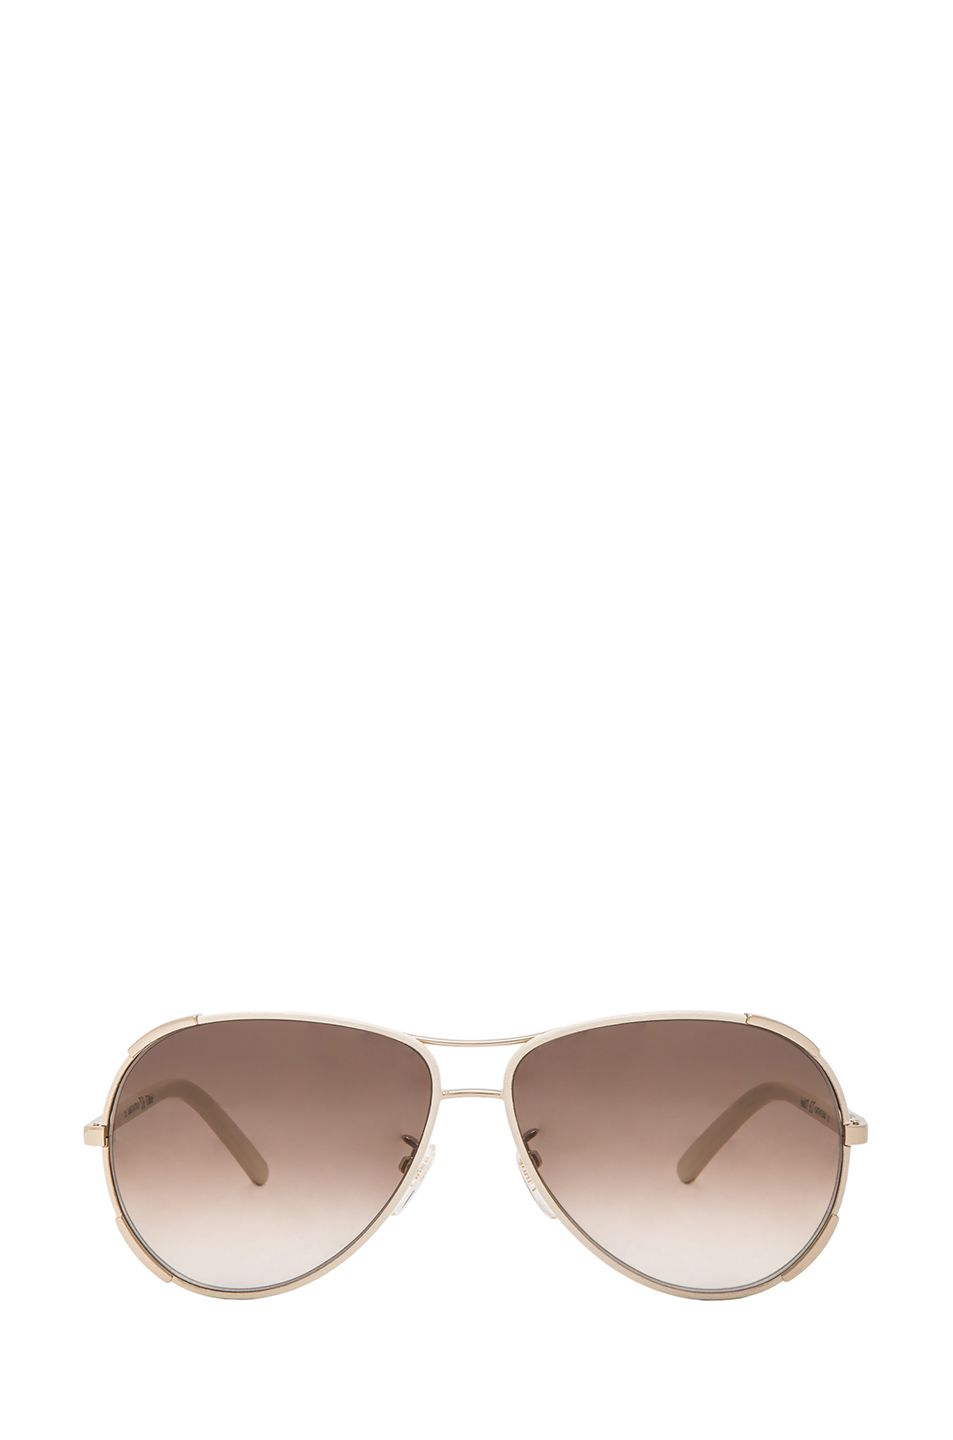 36bbe921a11 Image 1 of Chloe Nerine Sunglasses in Ivory   Gold